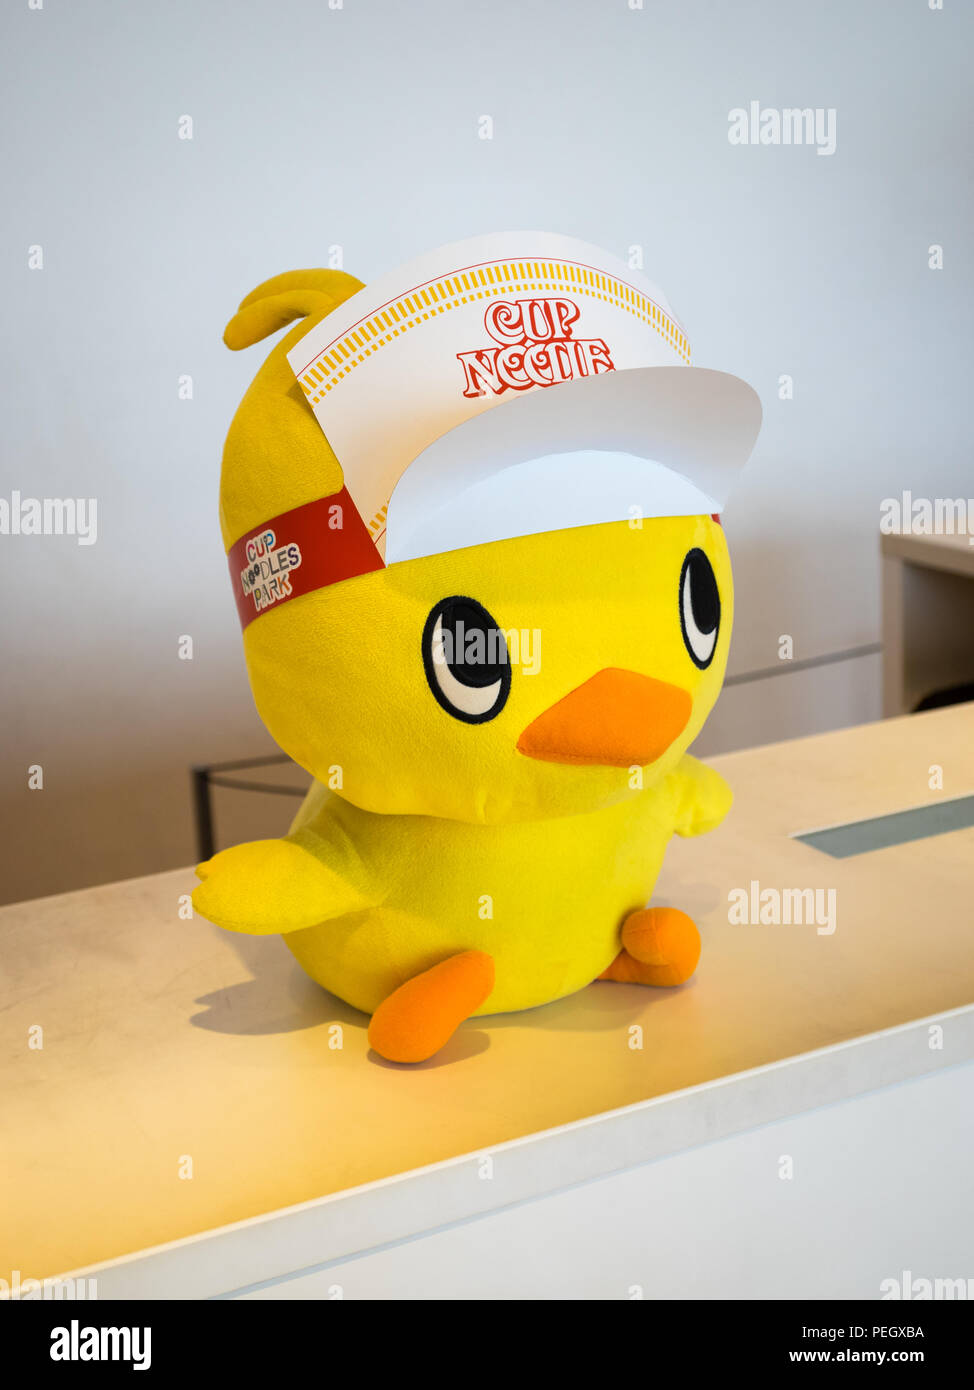 The cute baby chick mascot of the Nissin Cupnoodles Museum in Yokohama, Japan. - Stock Image